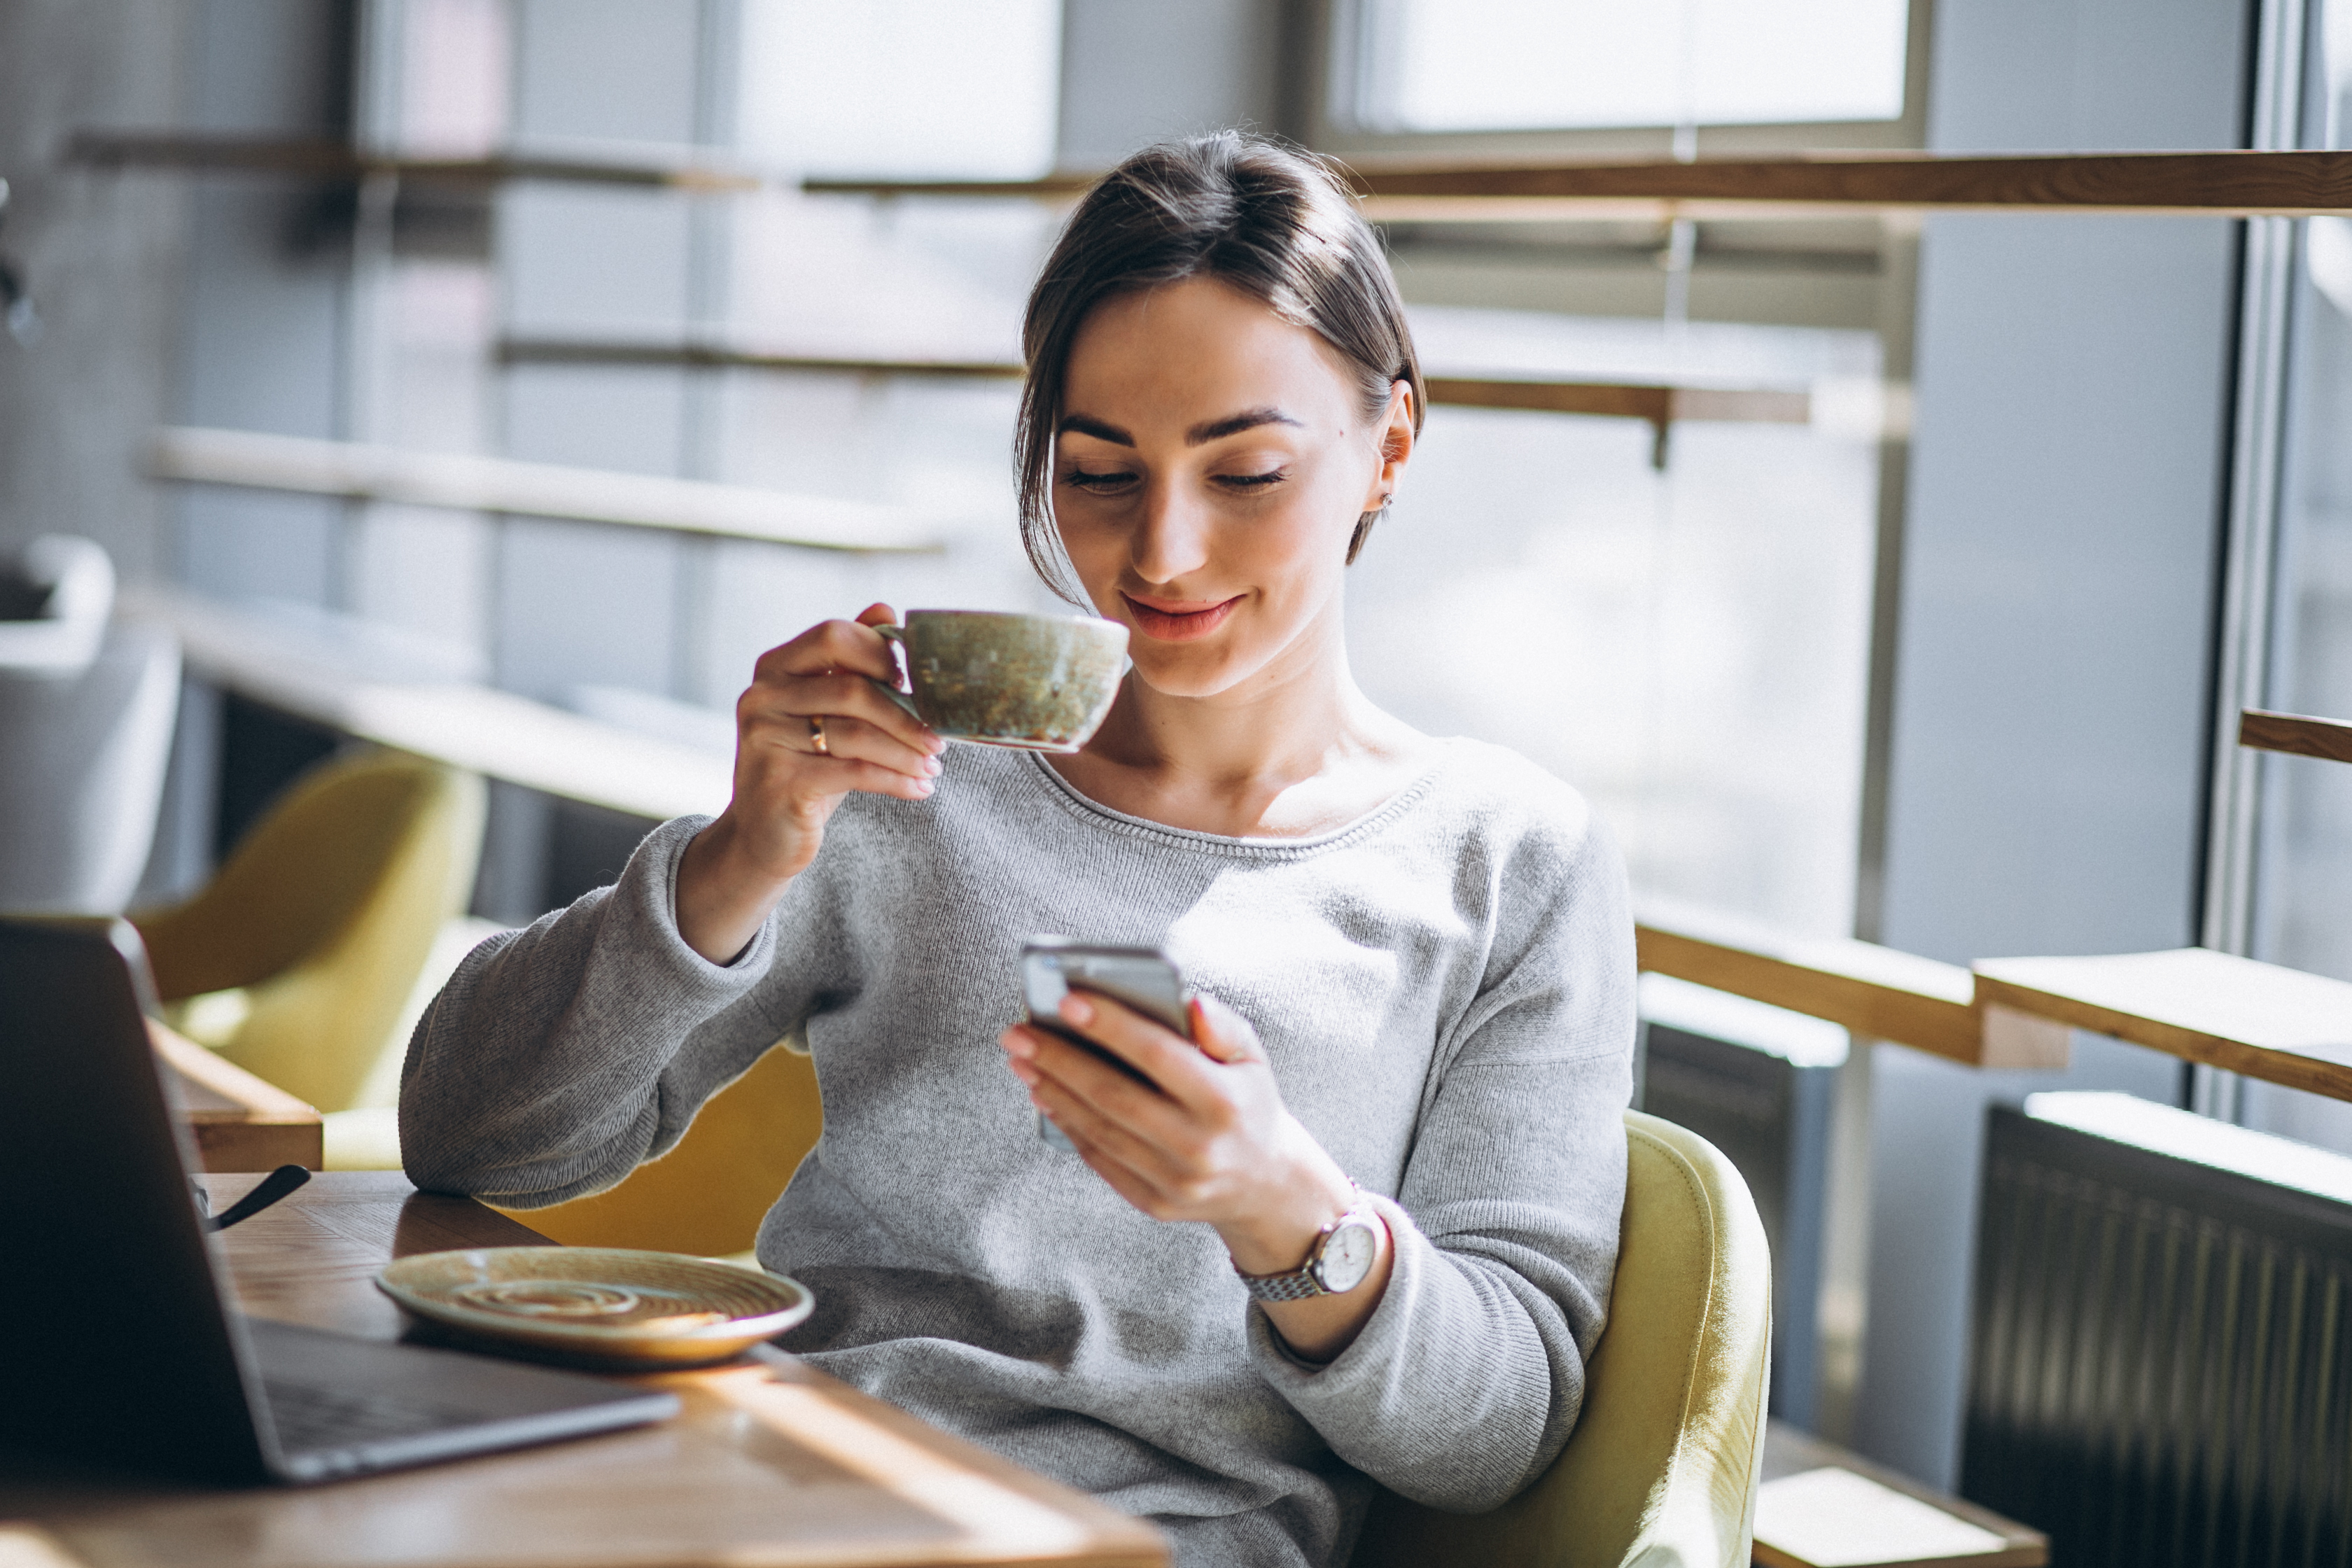 A woman smiling at her phone while drinking a cup of coffee